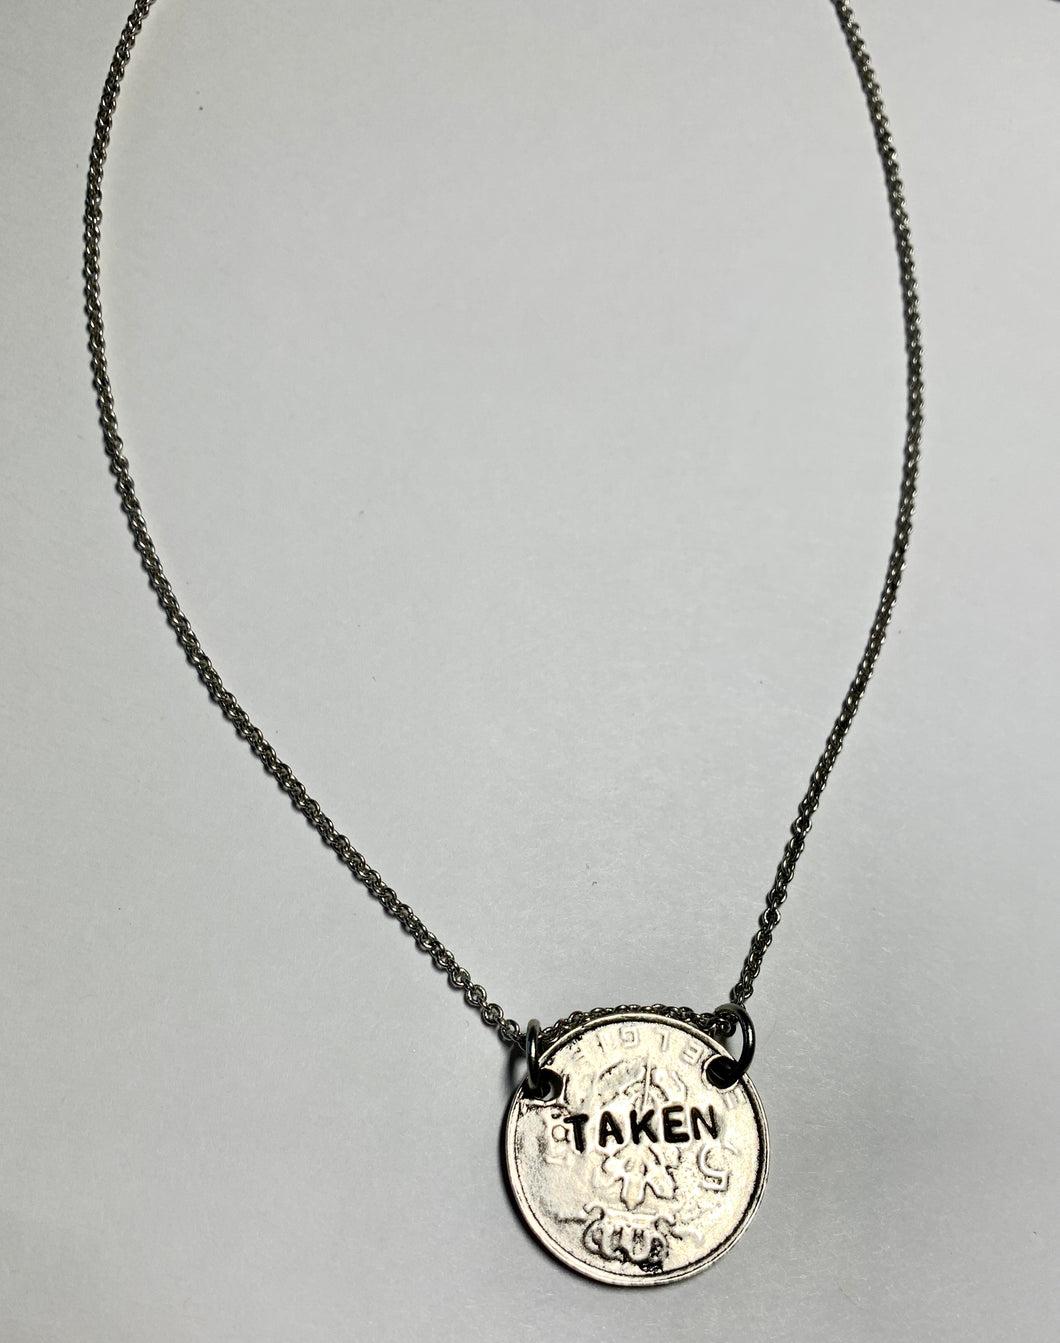 Single/Taken Necklace